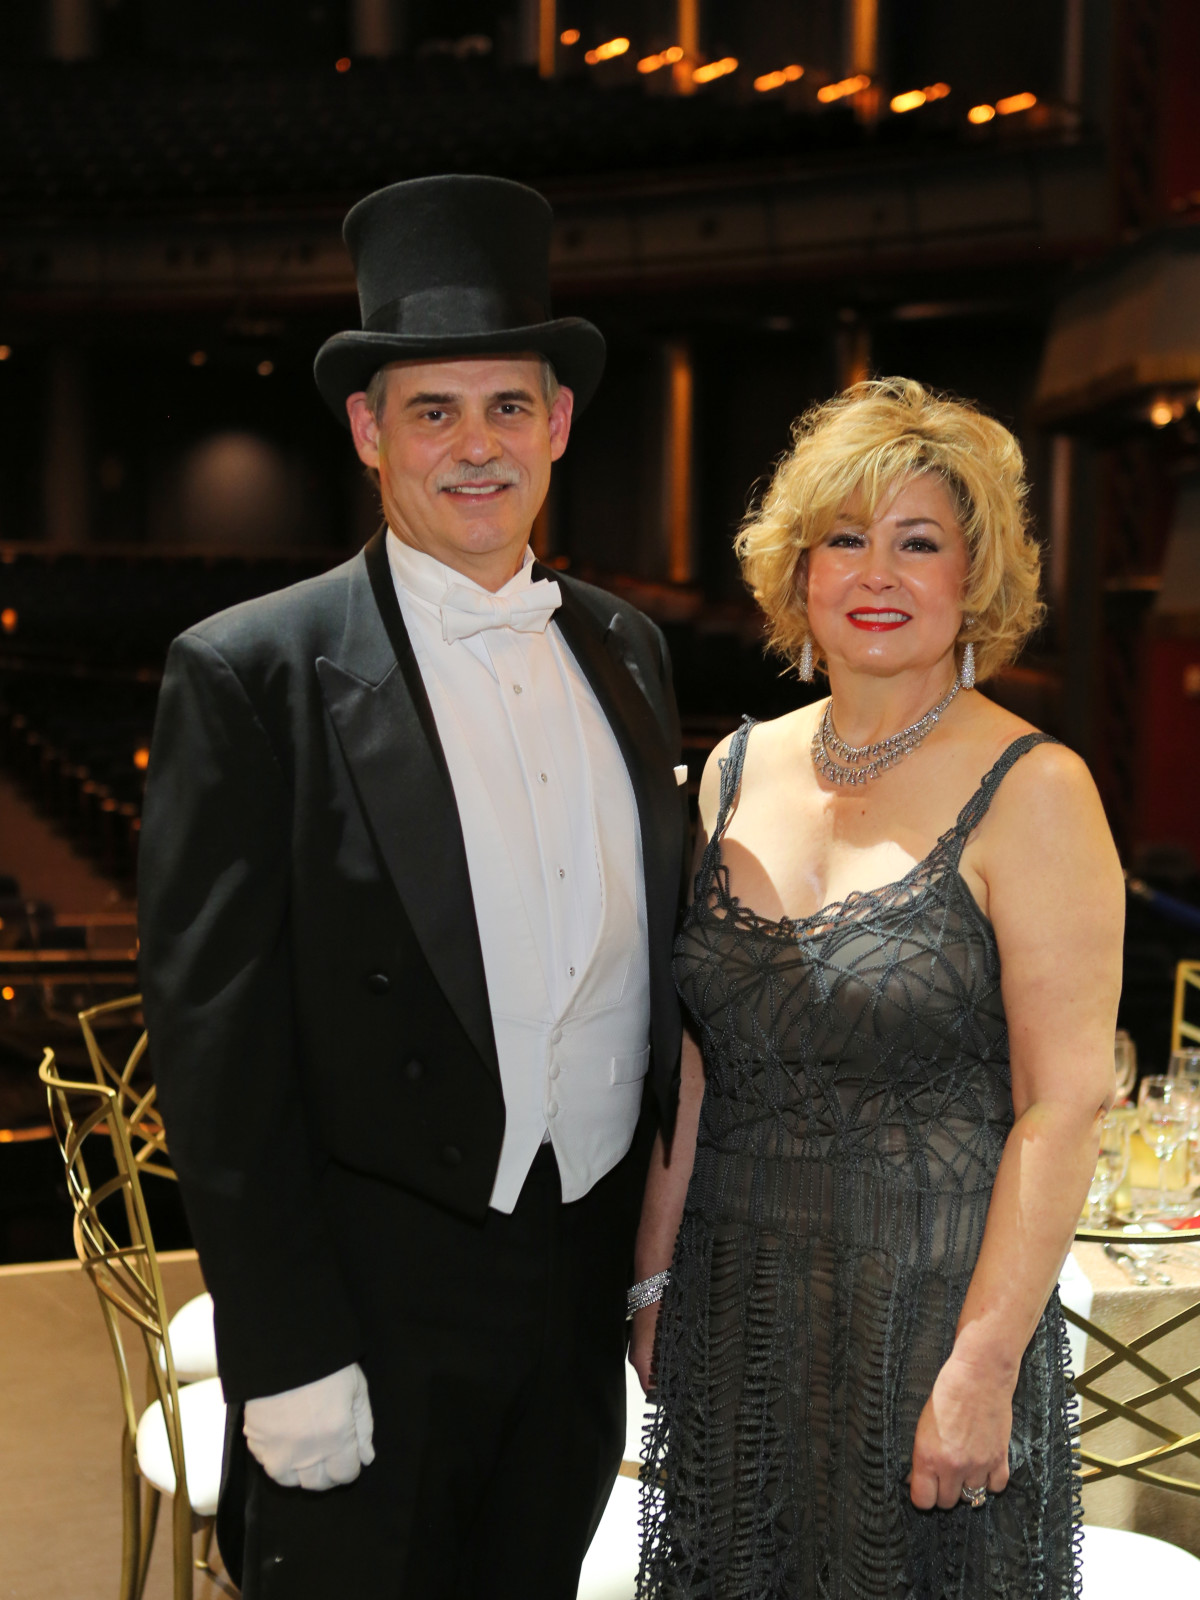 TUTS Gala 4/2016, Randy Stilley, Sandy Stilley